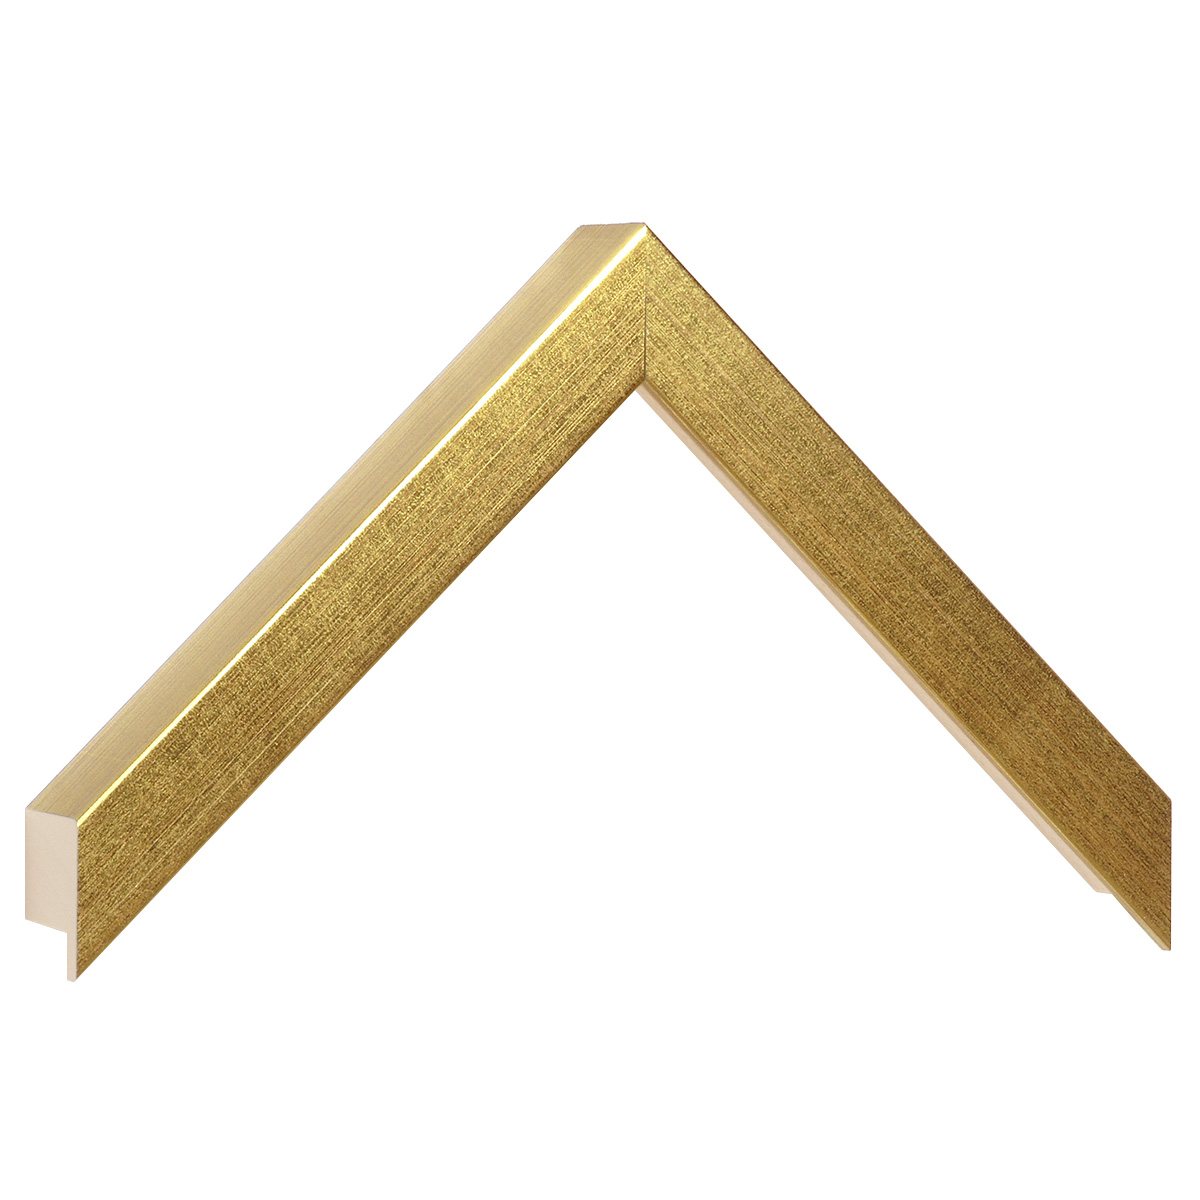 Moulding ayous, width 20mm height 32 - gold